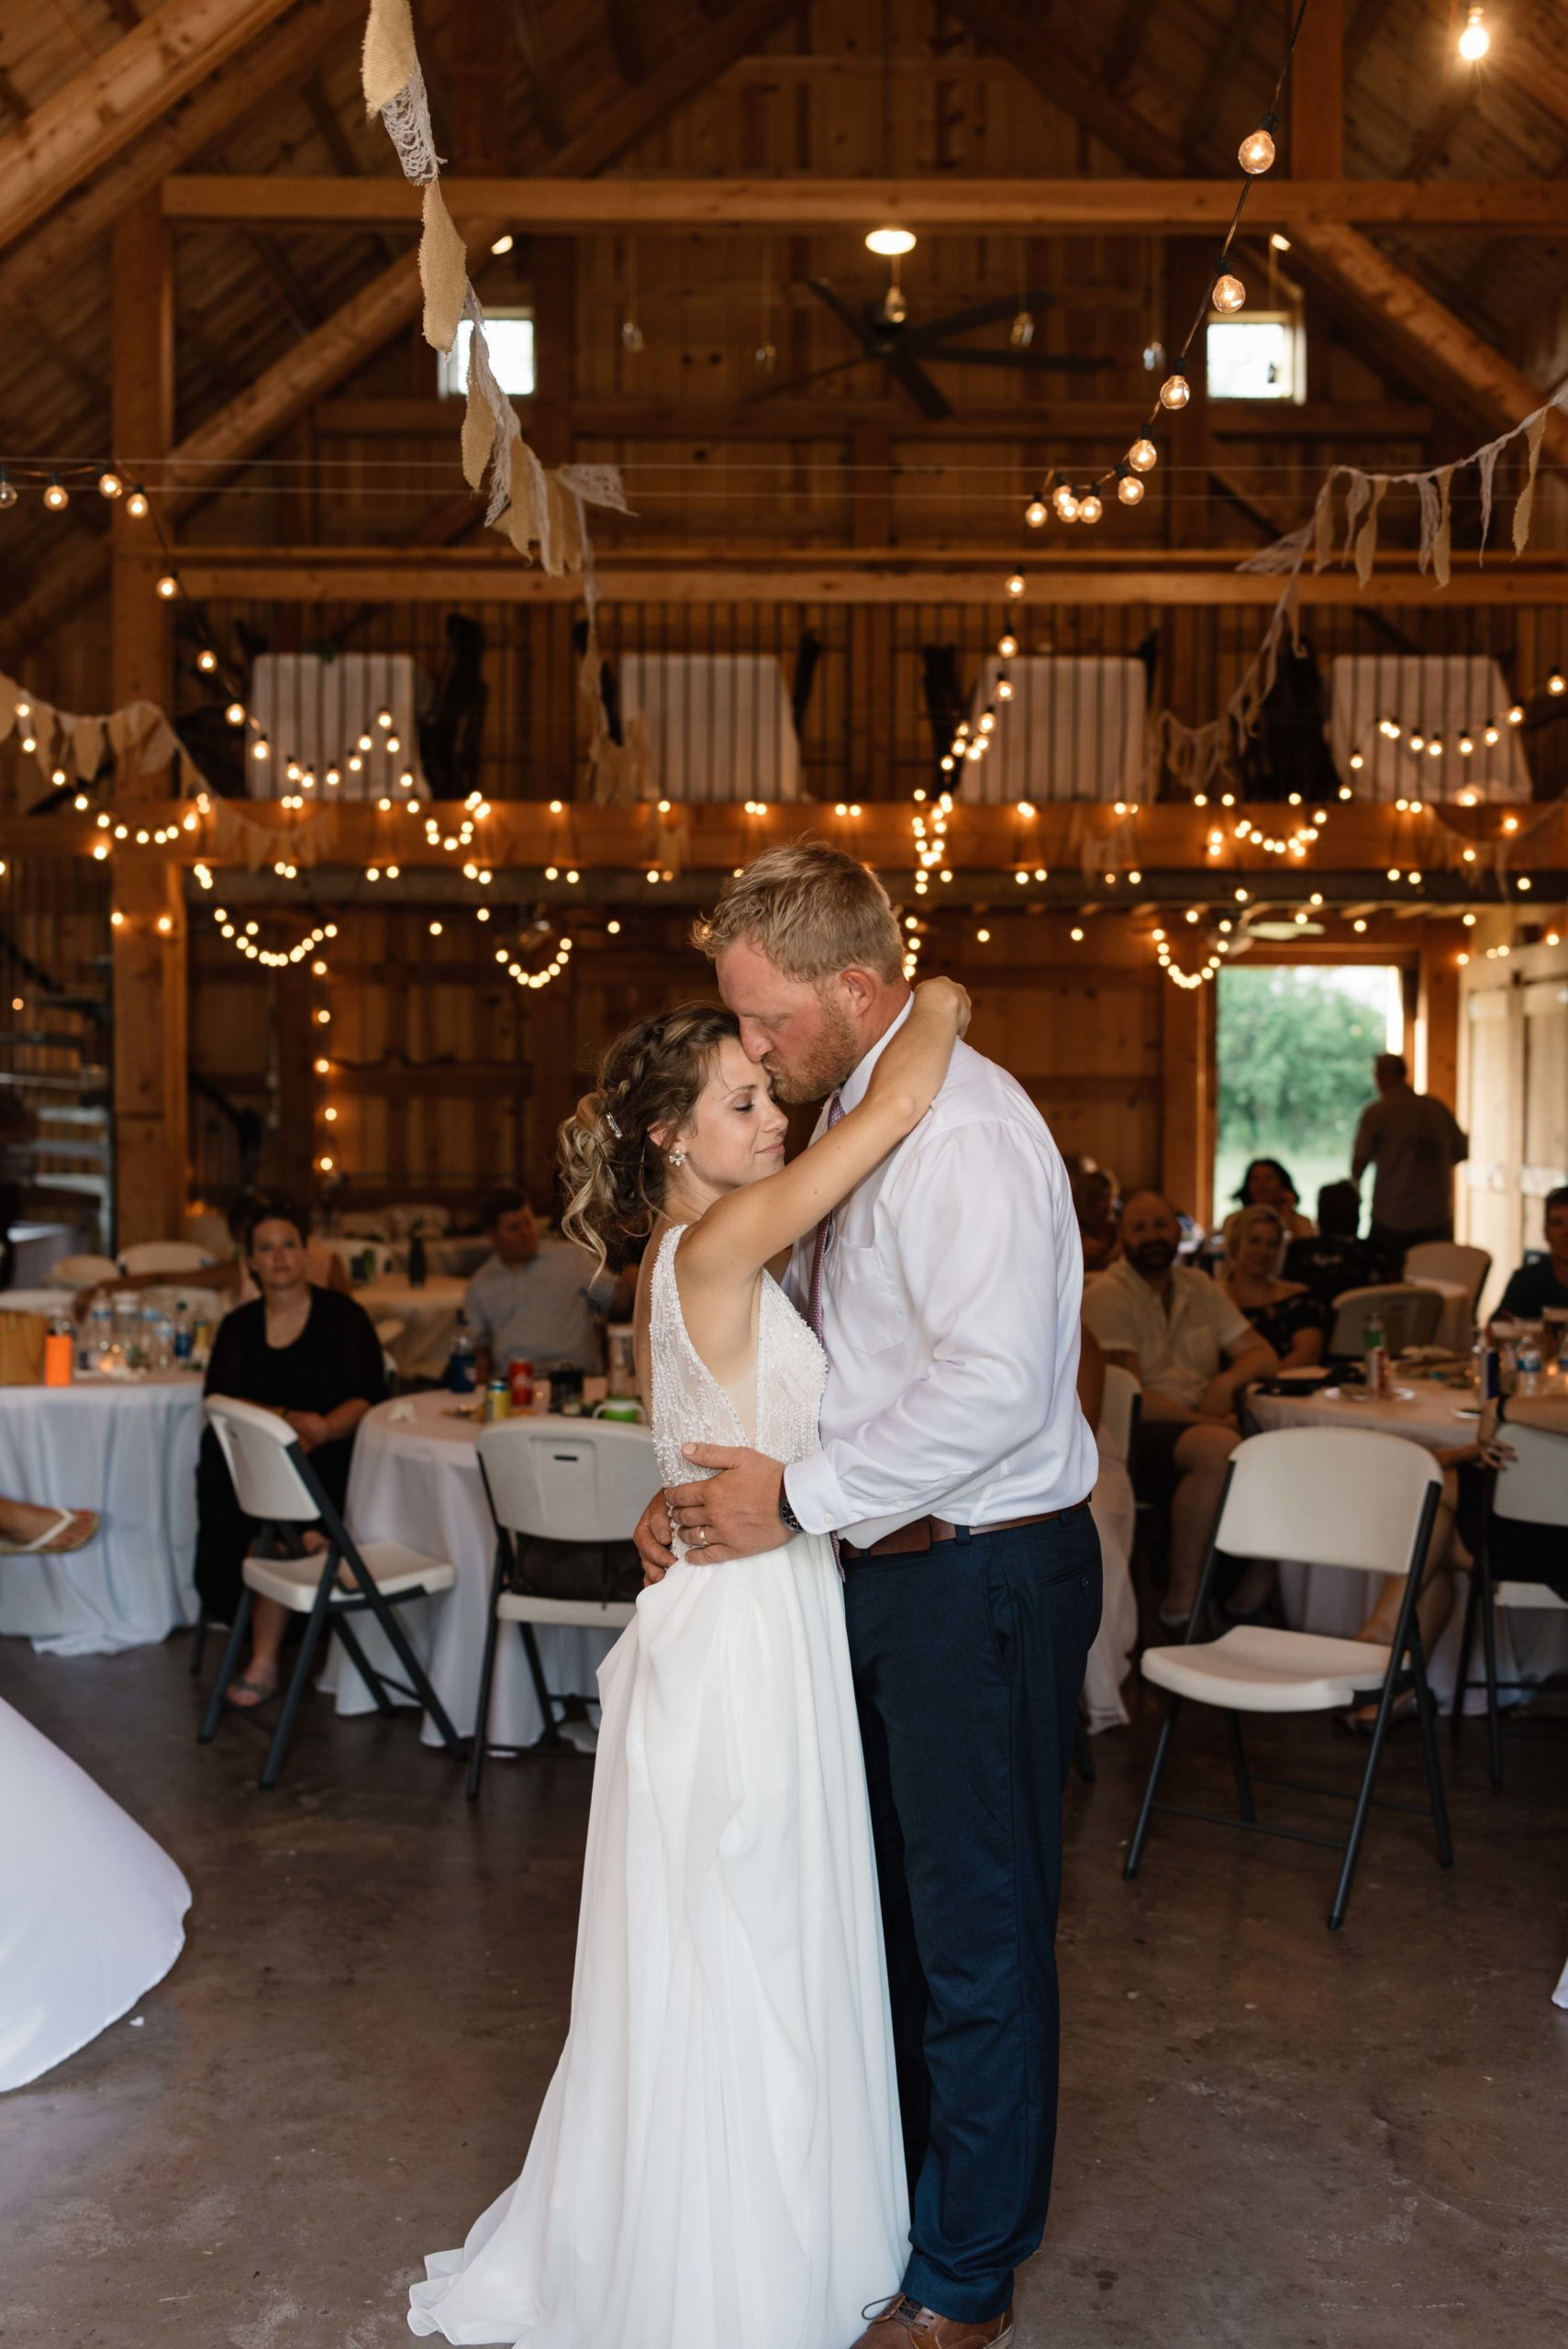 bride and groom first dance under twinkly edison bulb lights schafer century barn wedding venue